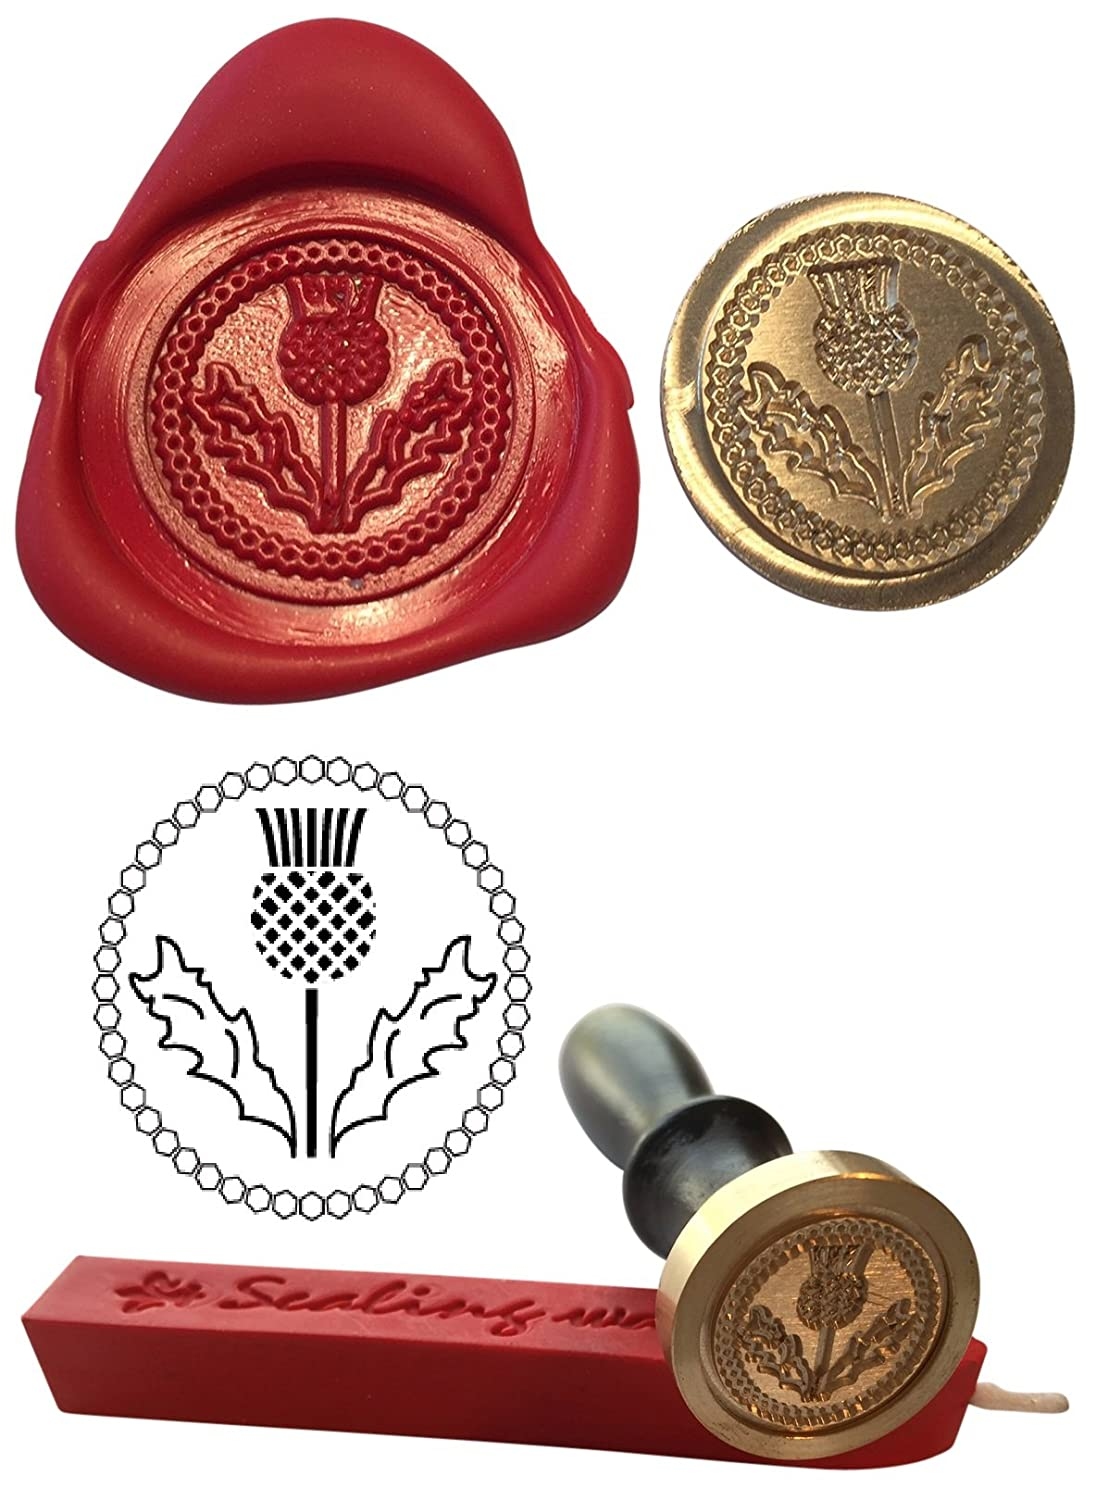 Wax Stamp, THISTLE Scotland Scottish Coin Seal and Red Wax Stick XWSC067-KIT (S2) GTR-Gifts